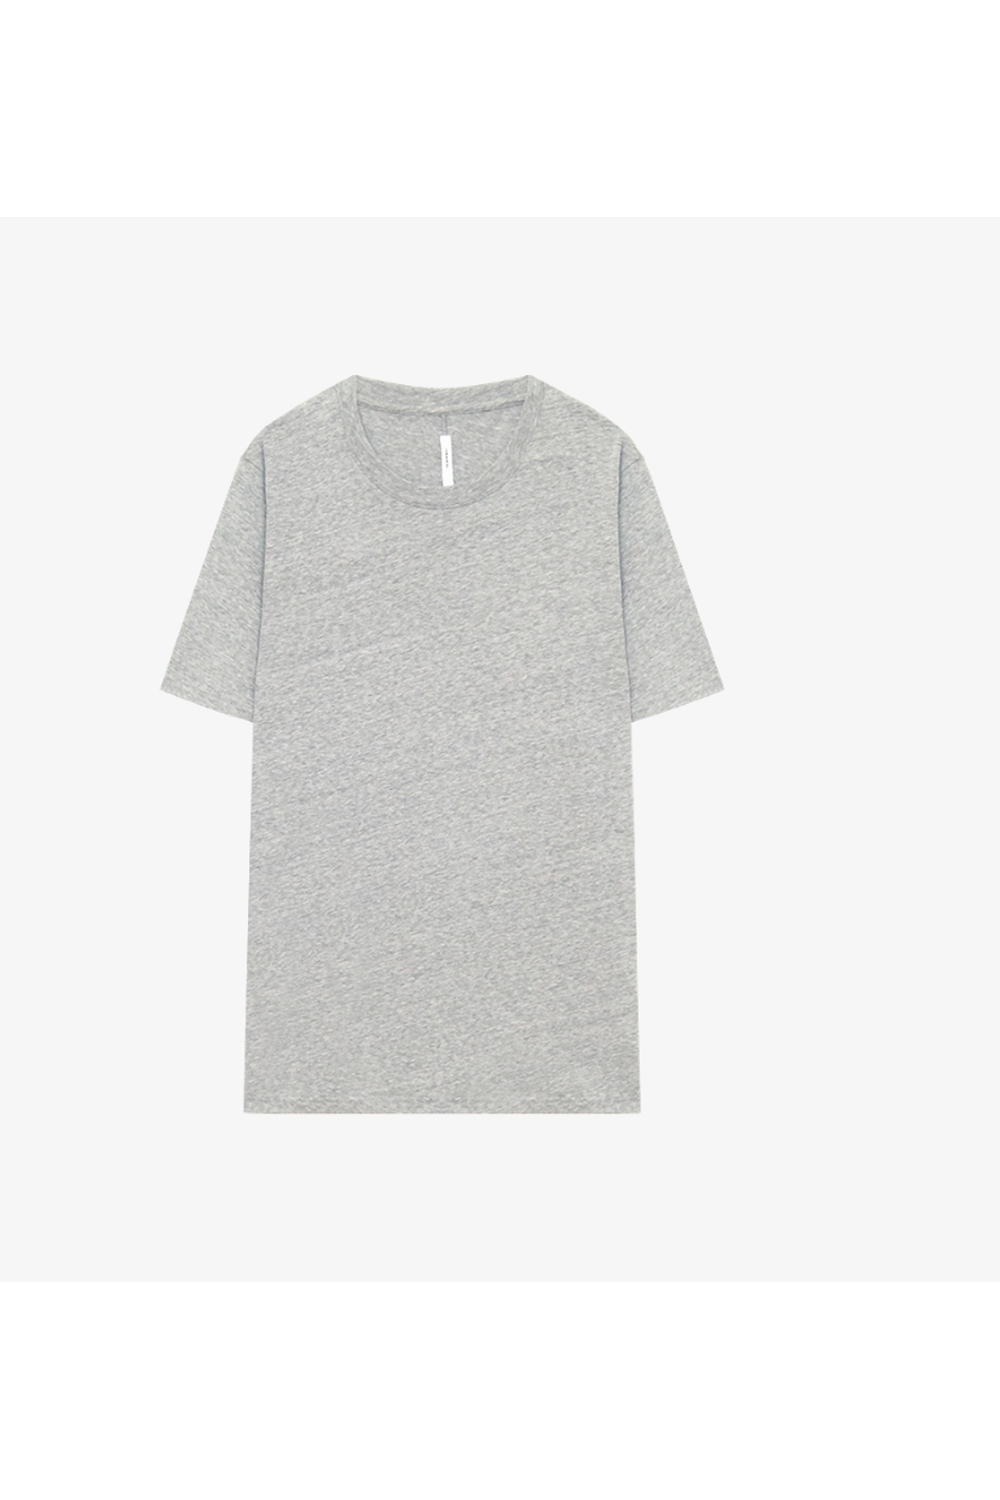 Standard Tee / Charcoal | COMMONERS | Mad About The Boy